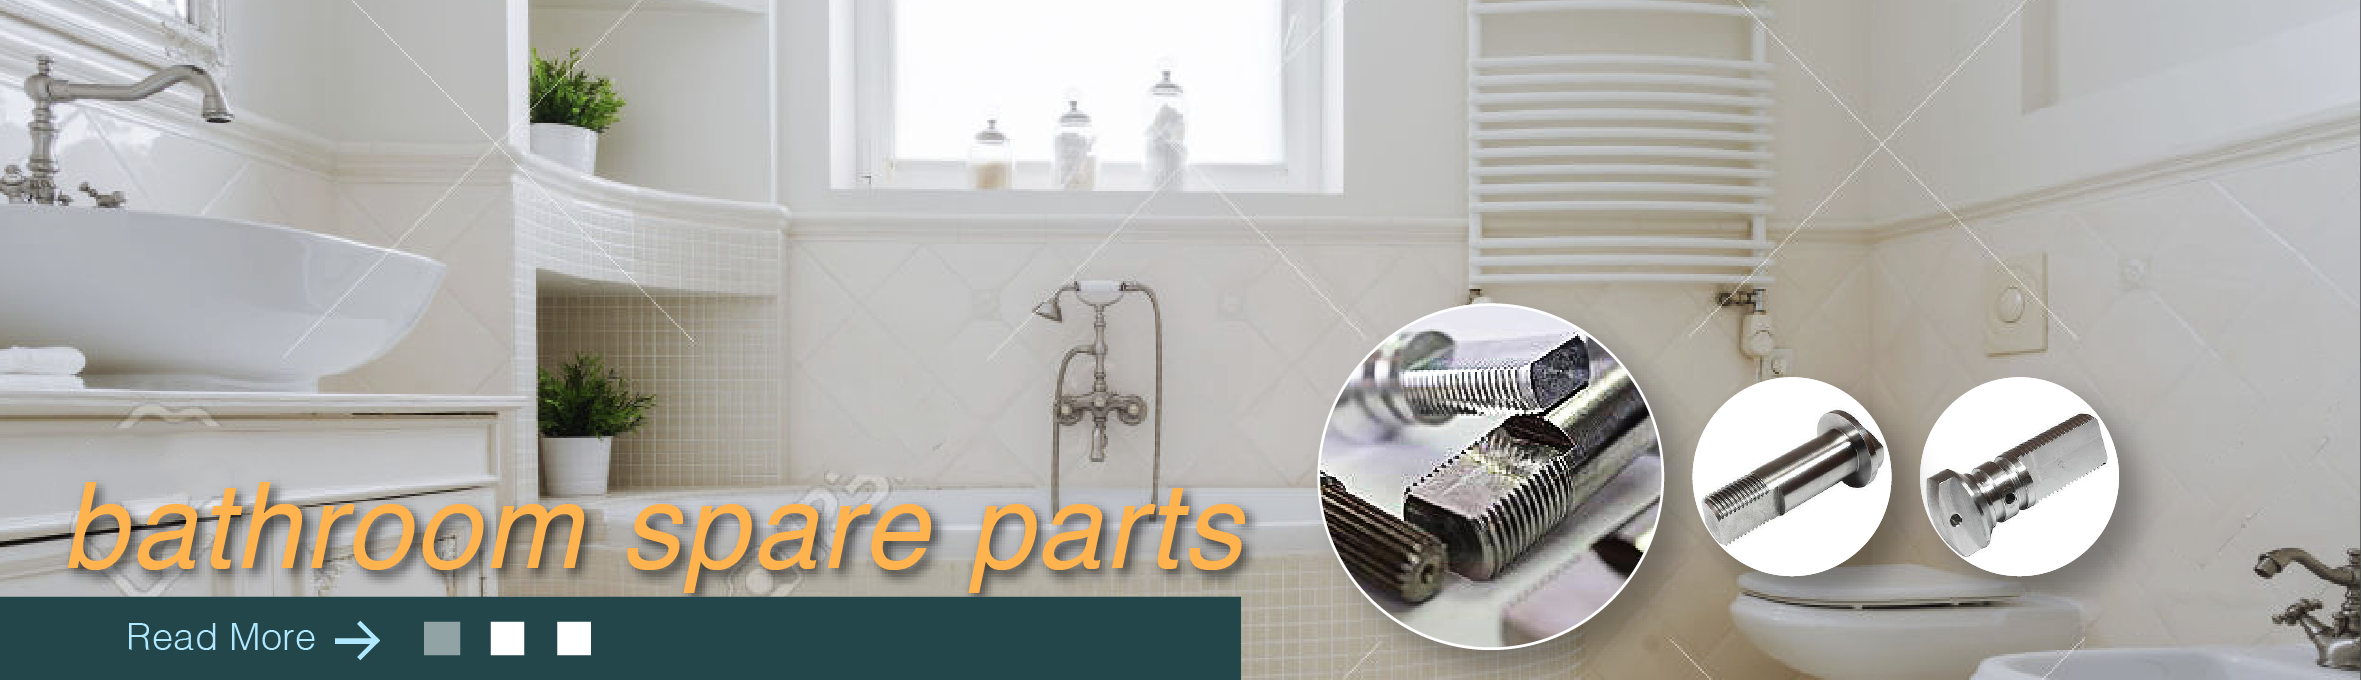 Bathroom spare parts